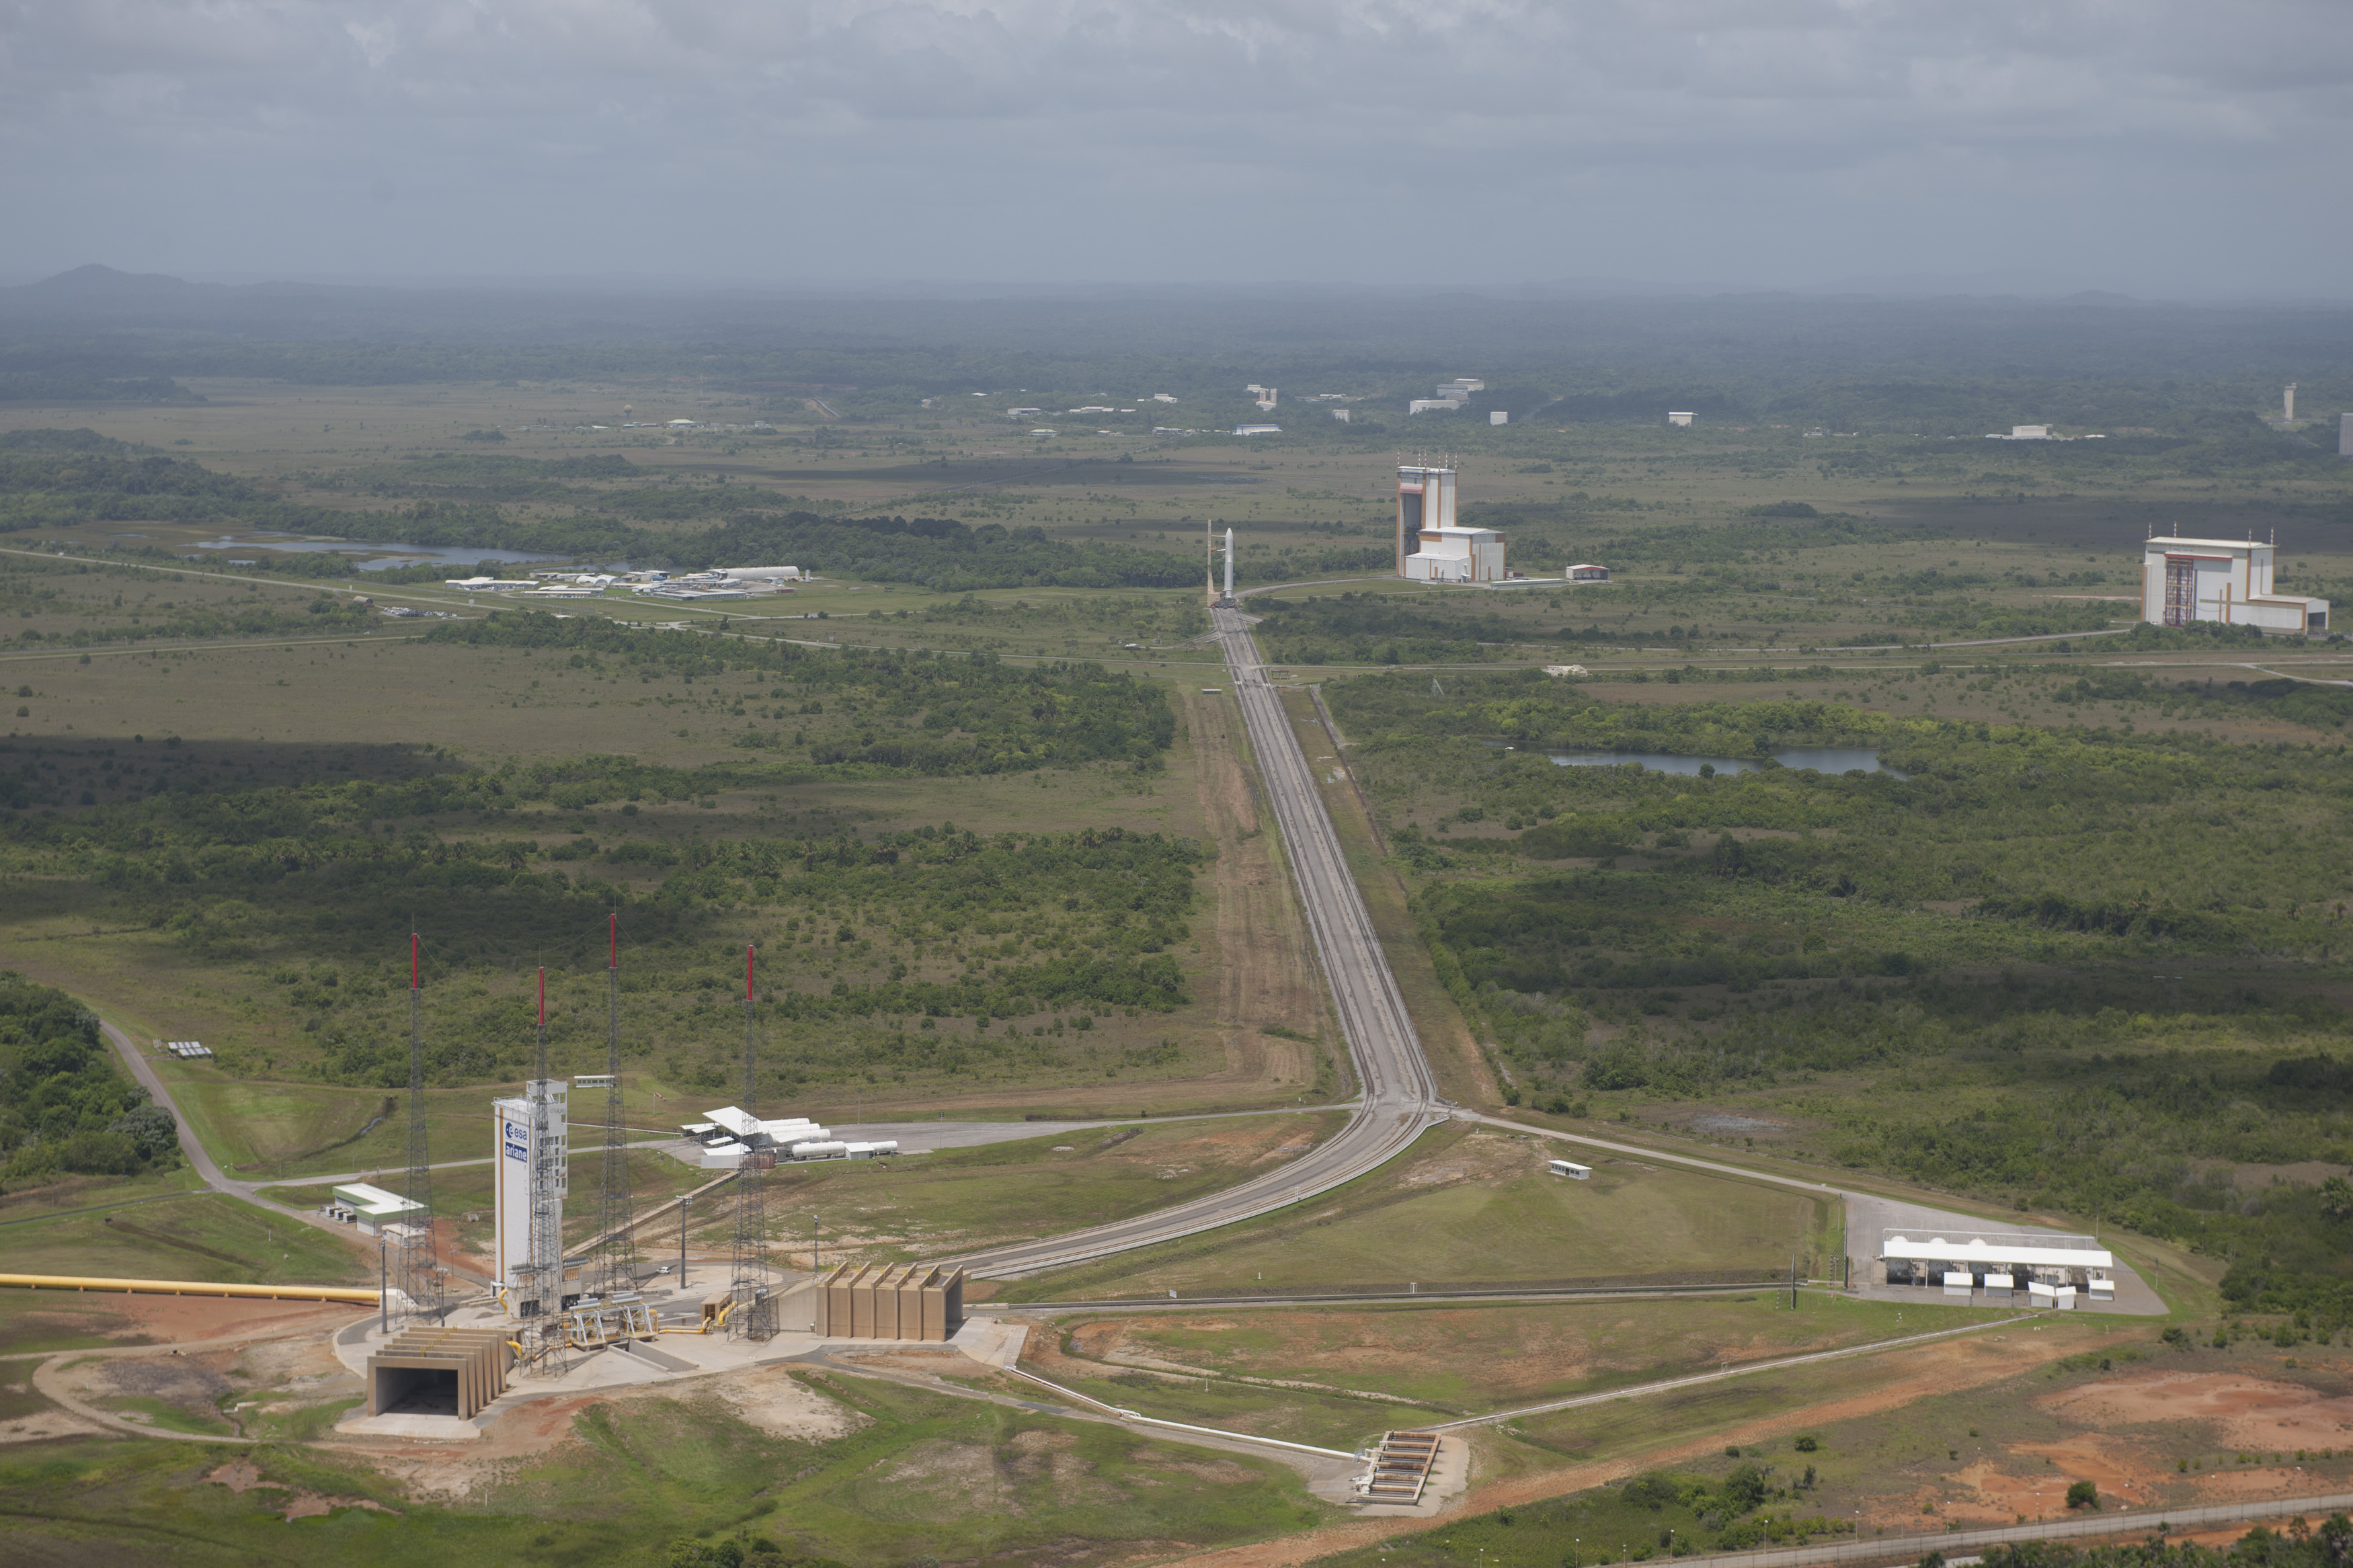 Overview of Ariane 5 Transfer